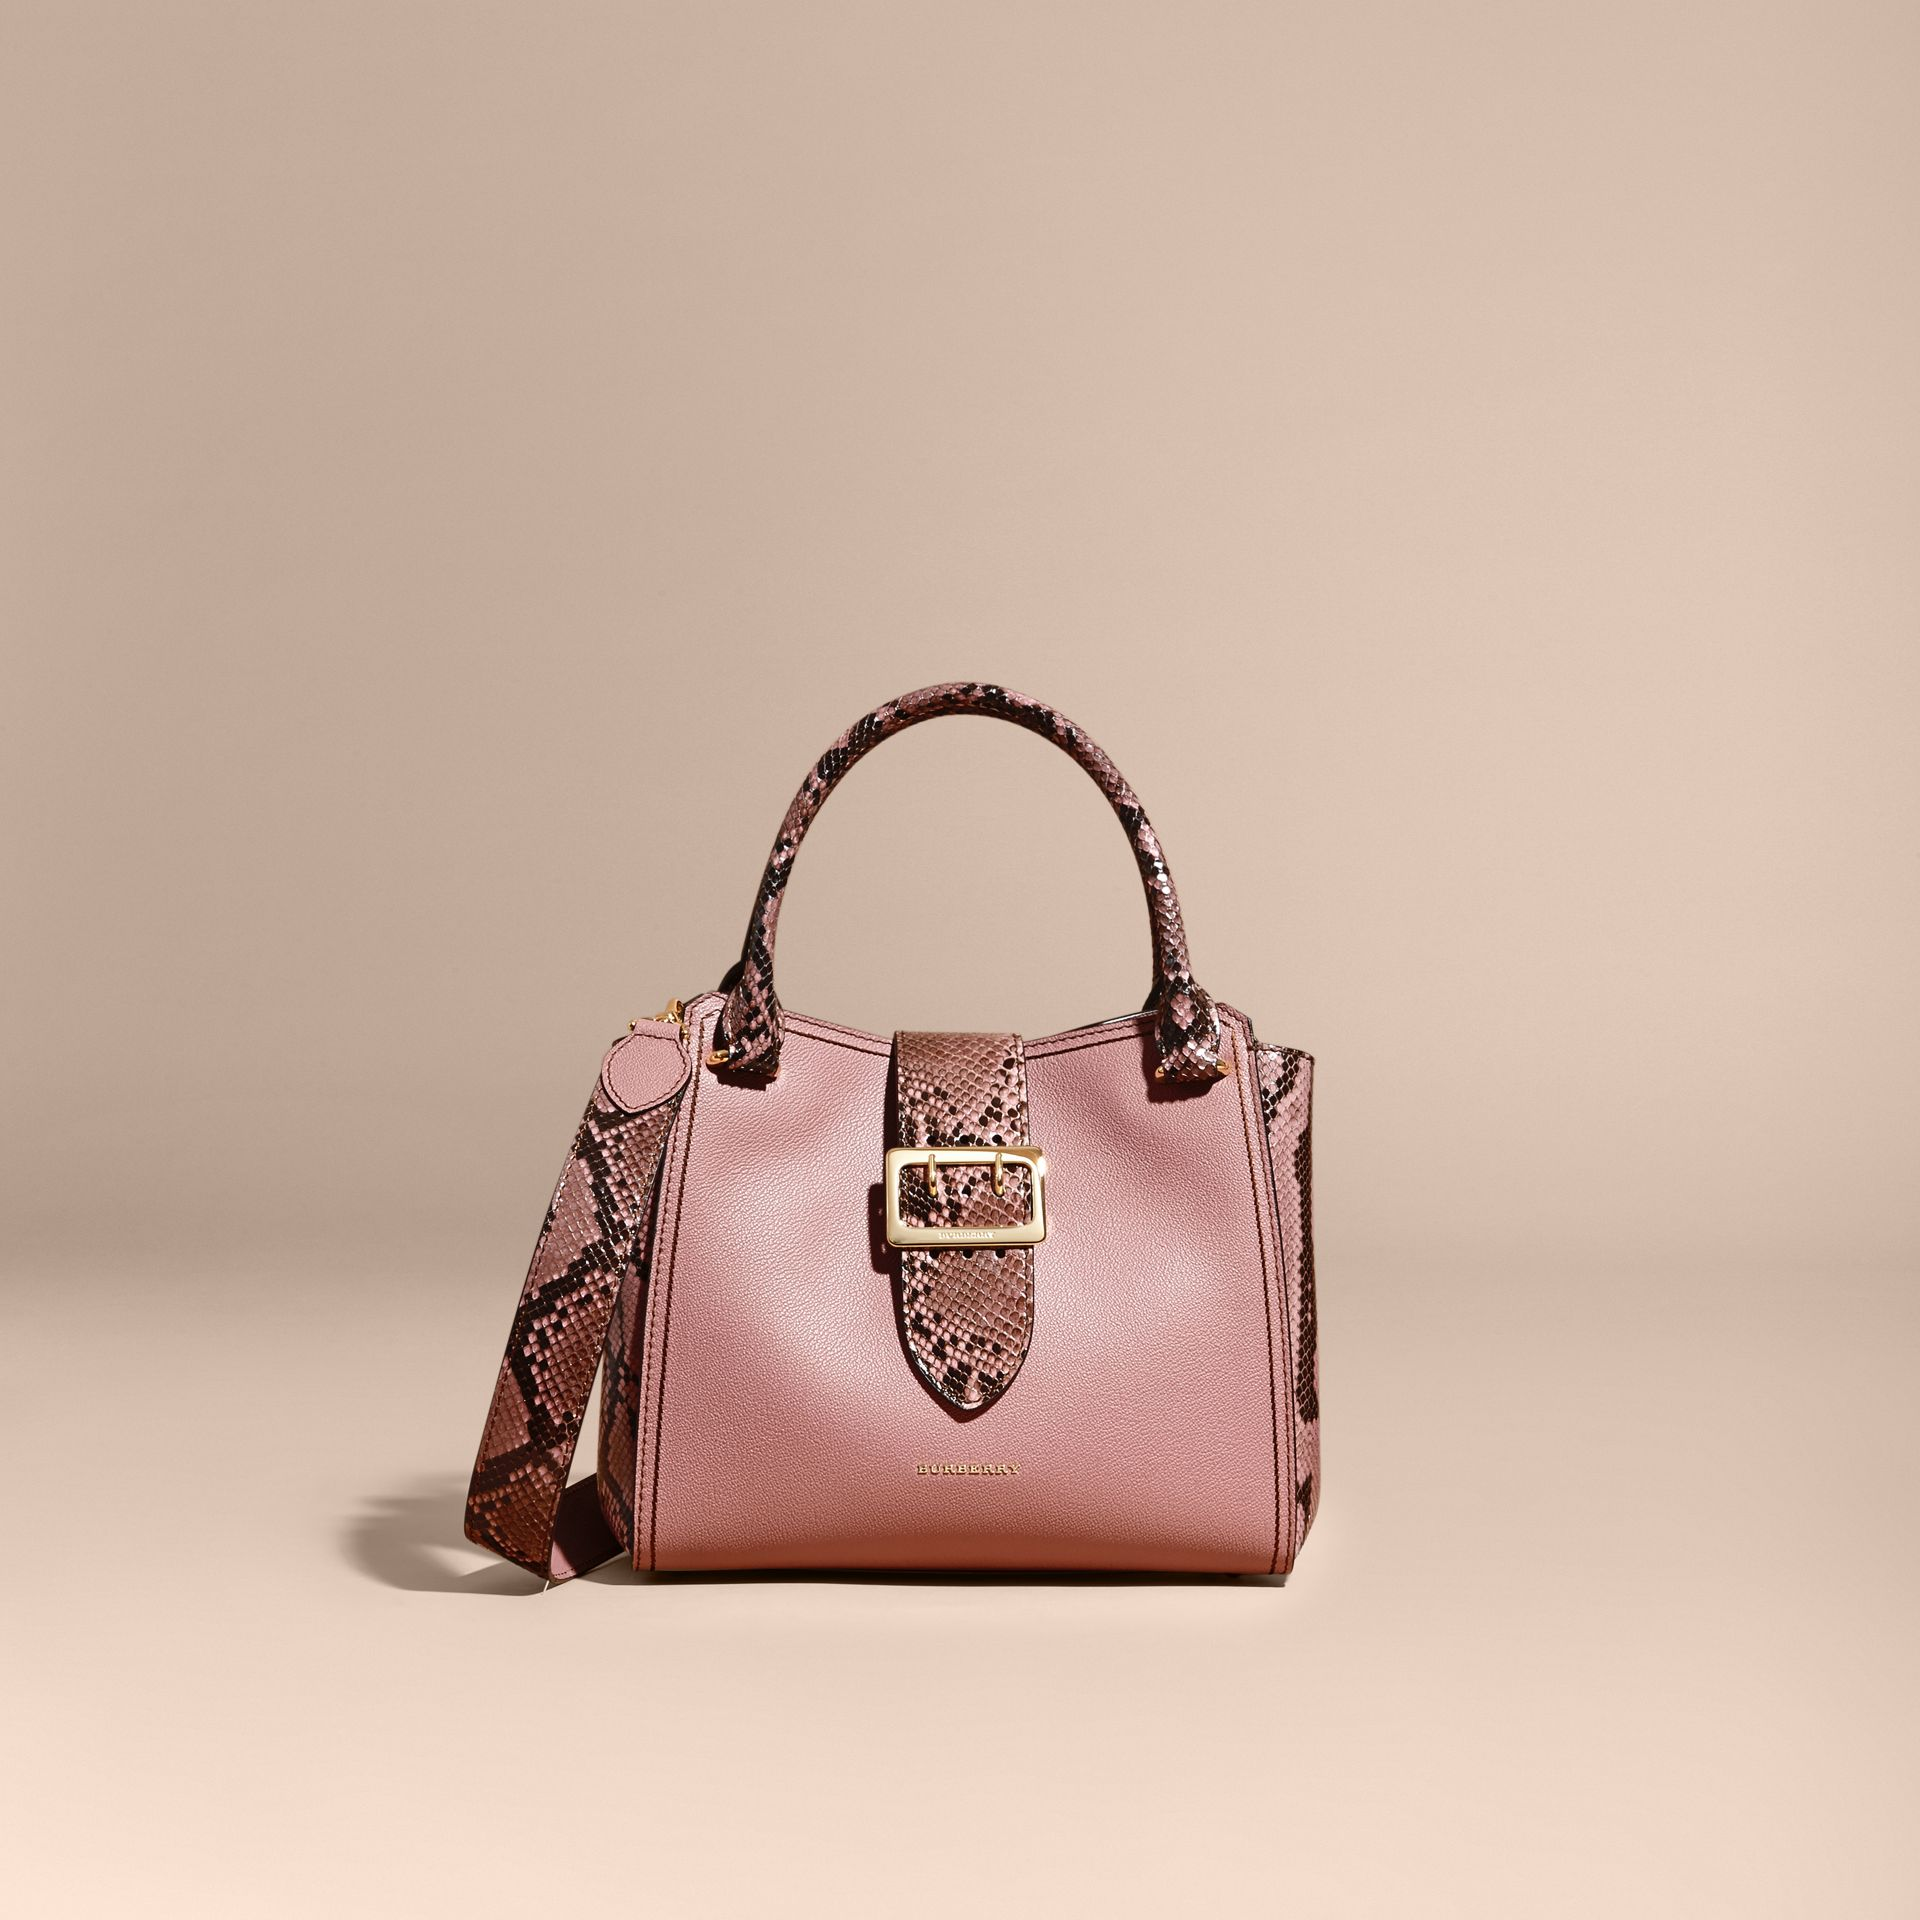 Dusty pink The Medium Buckle Tote in Grainy Leather and Python - gallery image 9